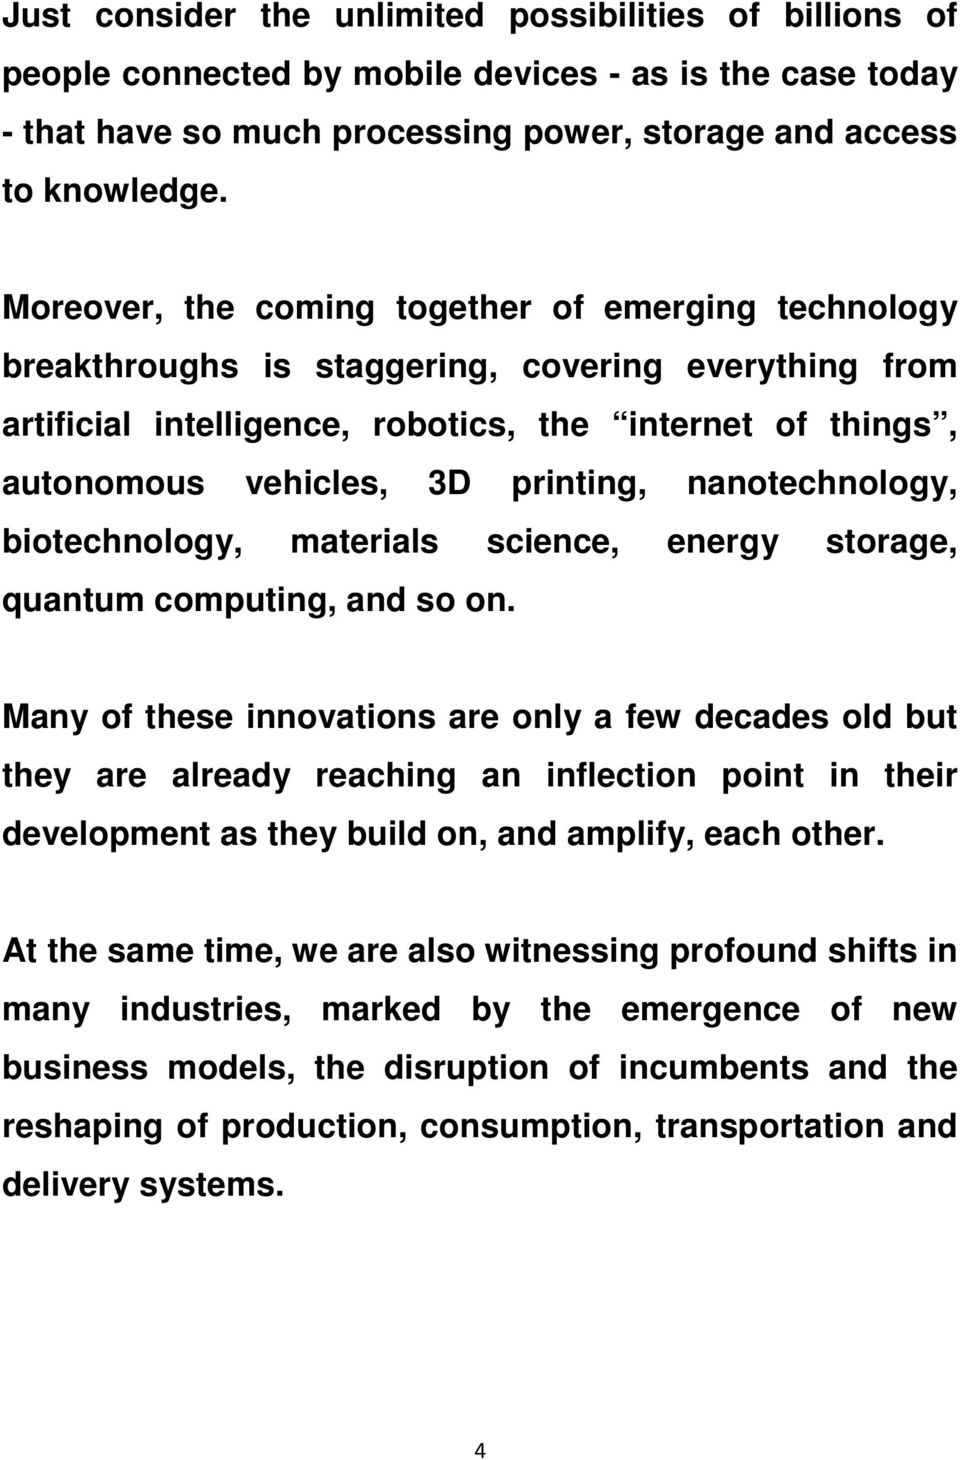 nanotechnology, biotechnology, materials science, energy storage, quantum computing, and so on.